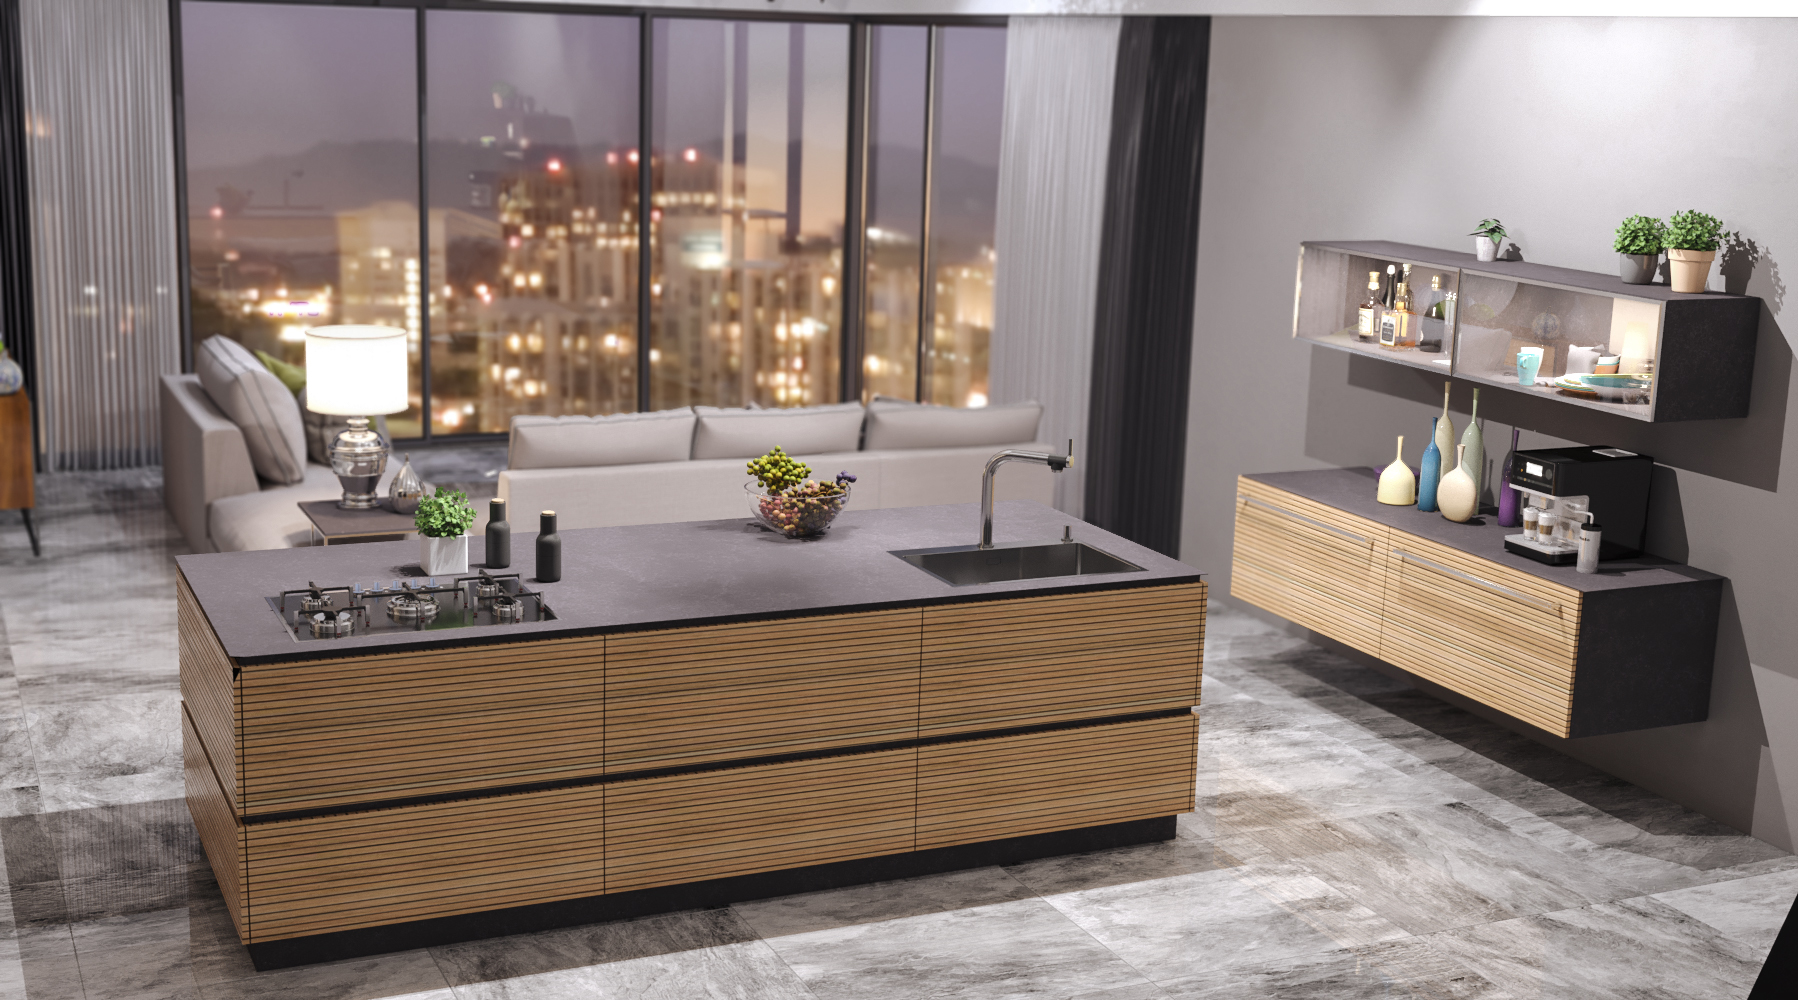 Kitchen fabrice in 3d max corona render image